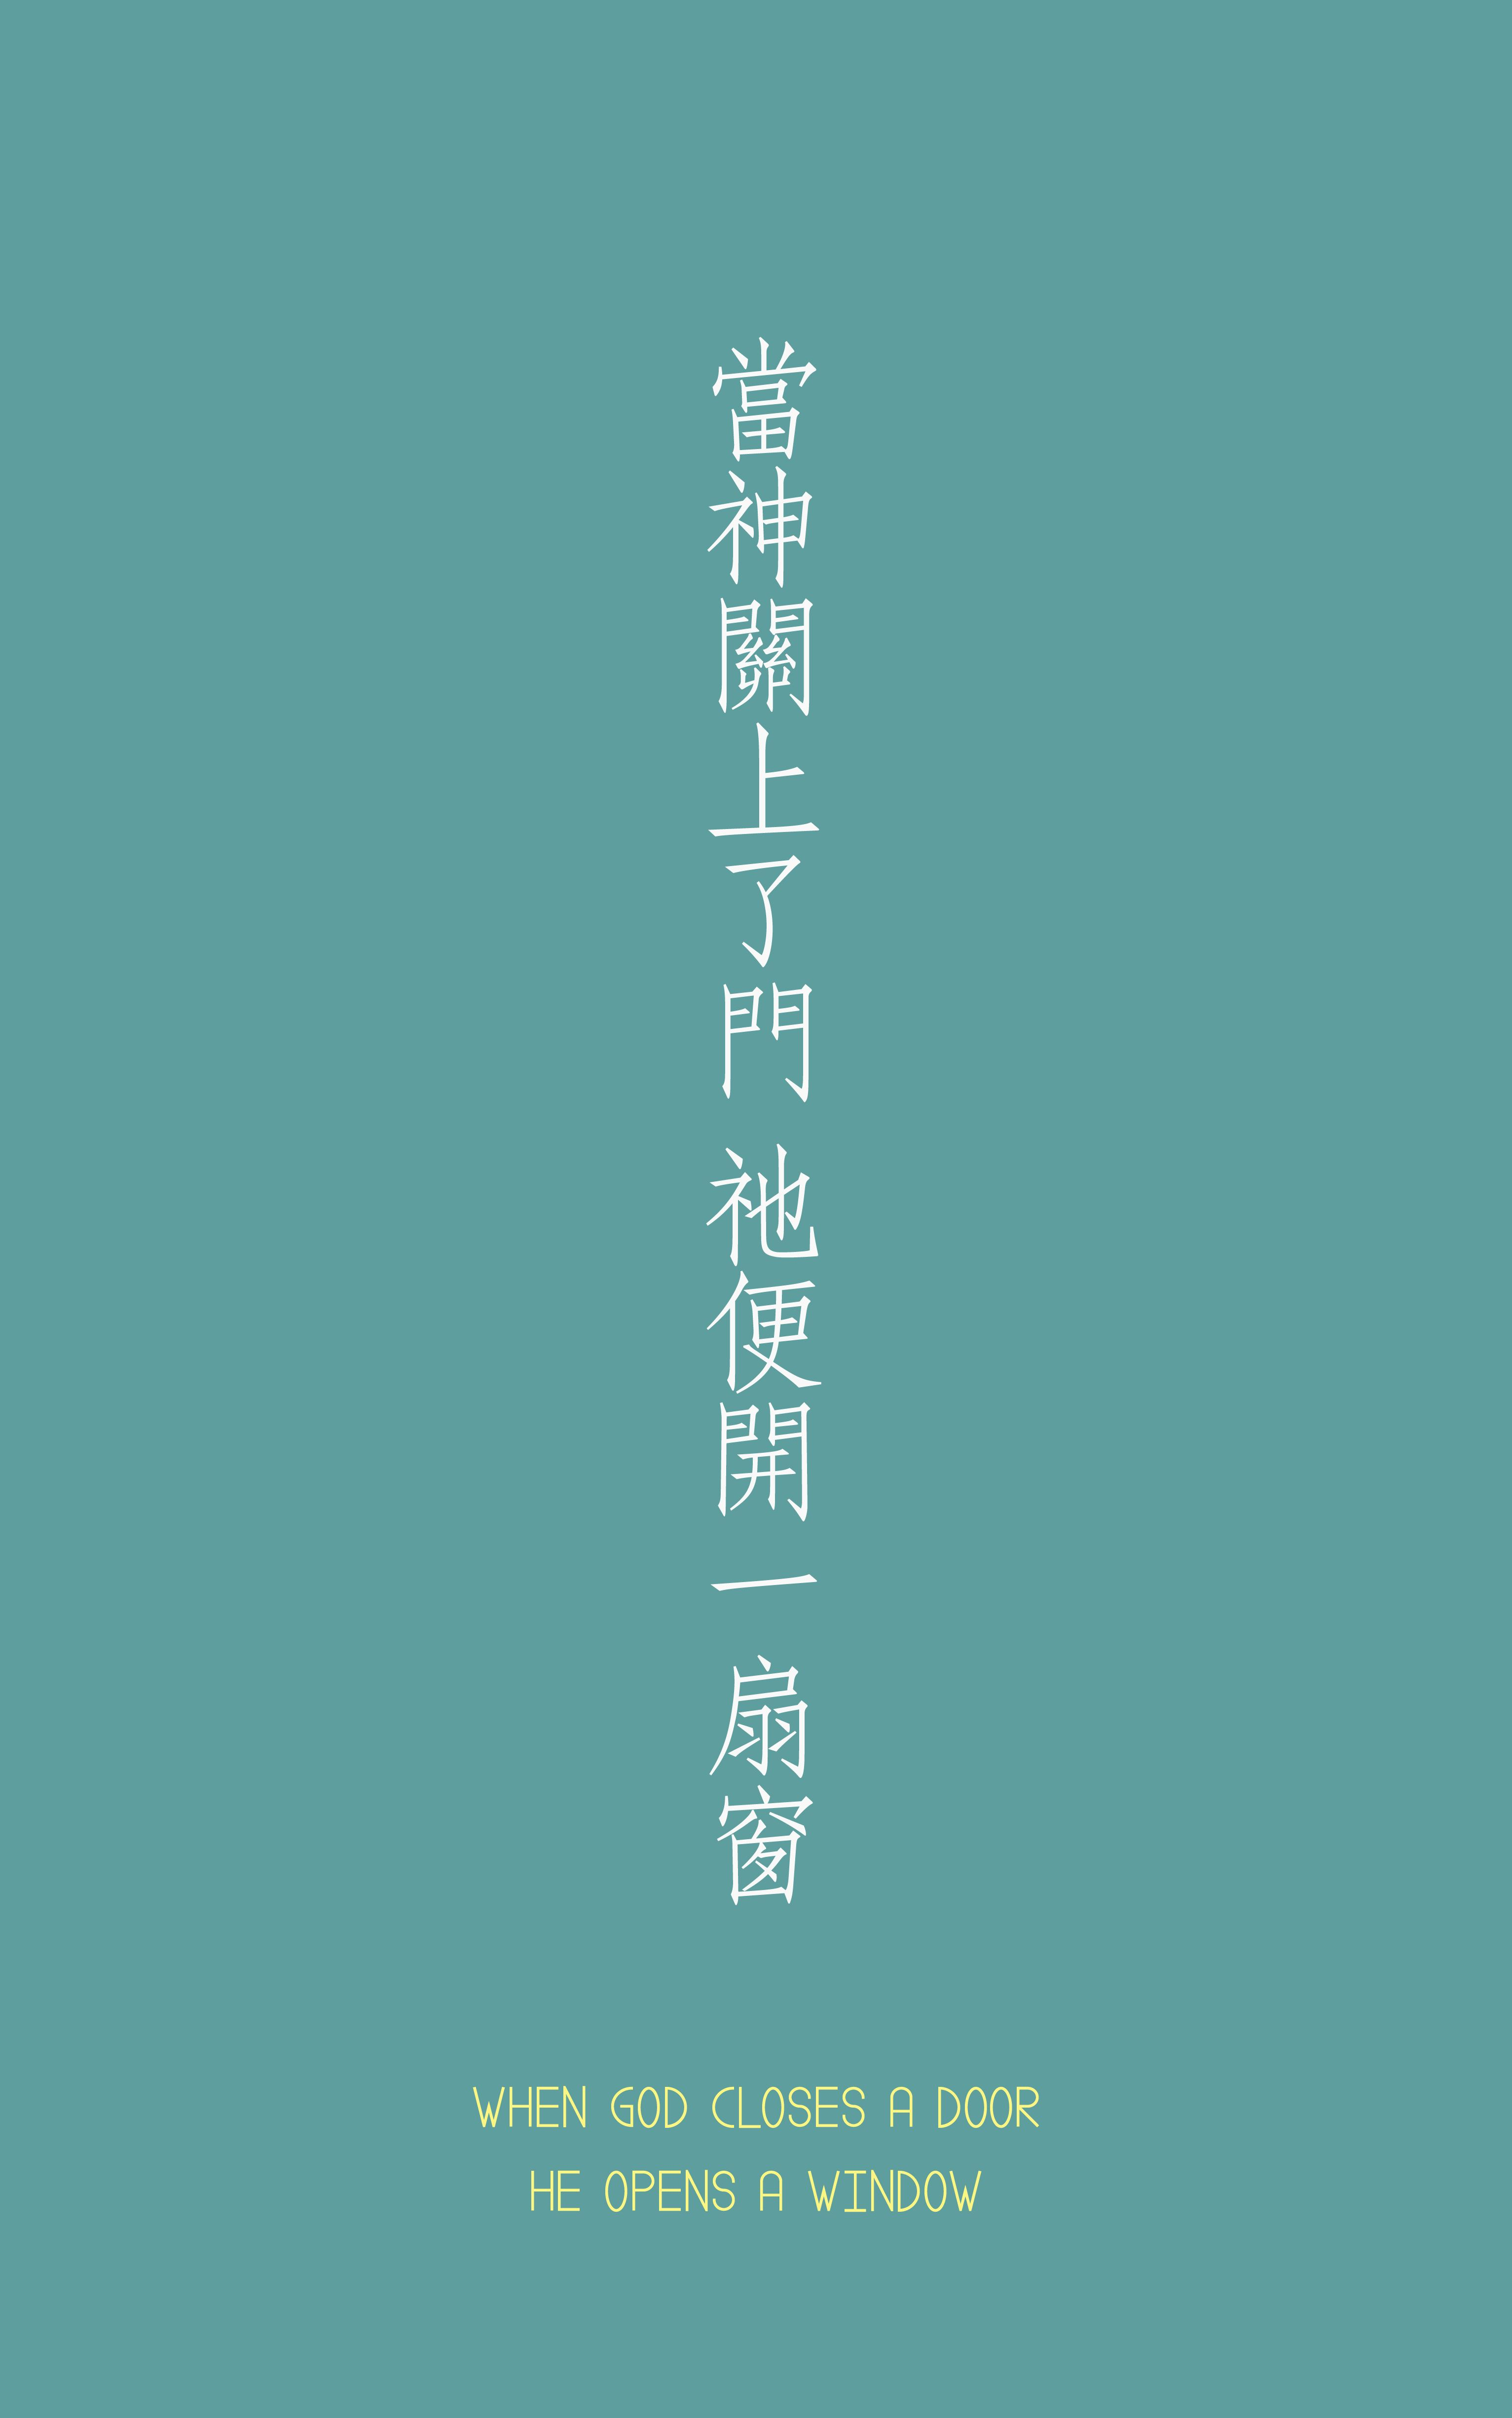 Chinese Quotes And English Translation